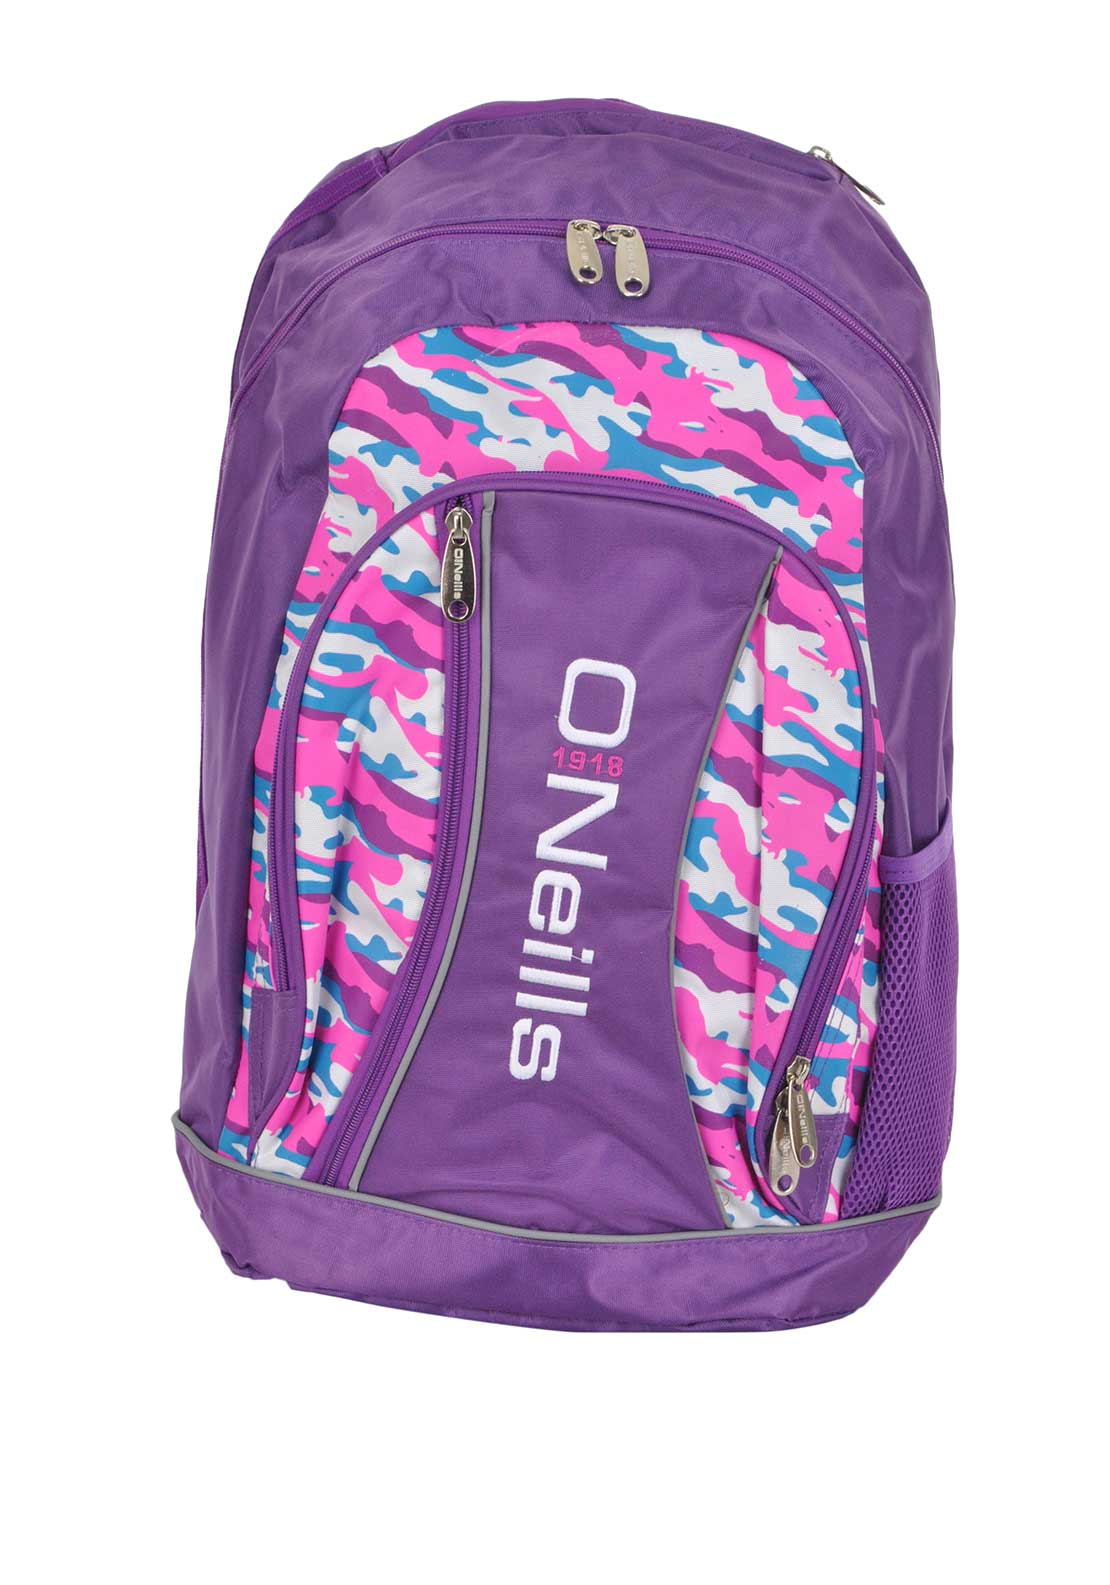 O'Neill's Camouflage Marley Back Pack School Bag, Purple